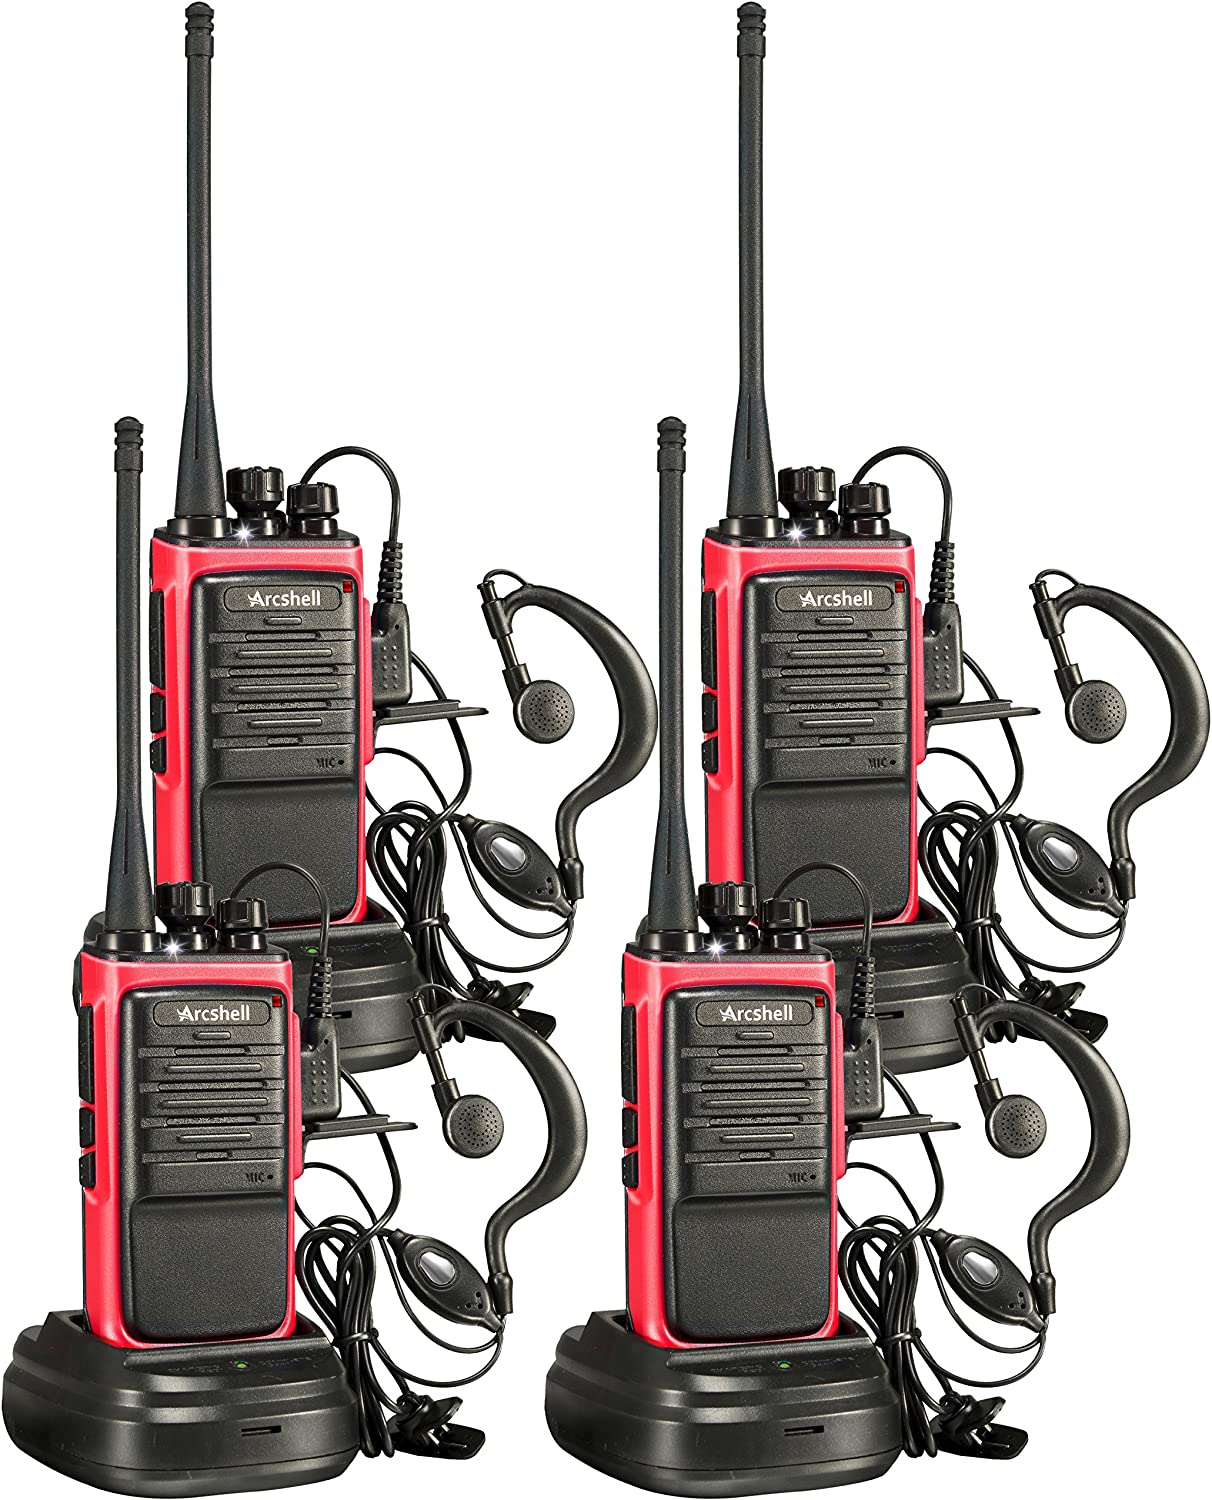 Arcshell Rechargeable Long Range Two-Way Radios with Earpiece 4 Pack Walkie Talkies UHF 400-470Mhz Li-ion Battery and Charger Included